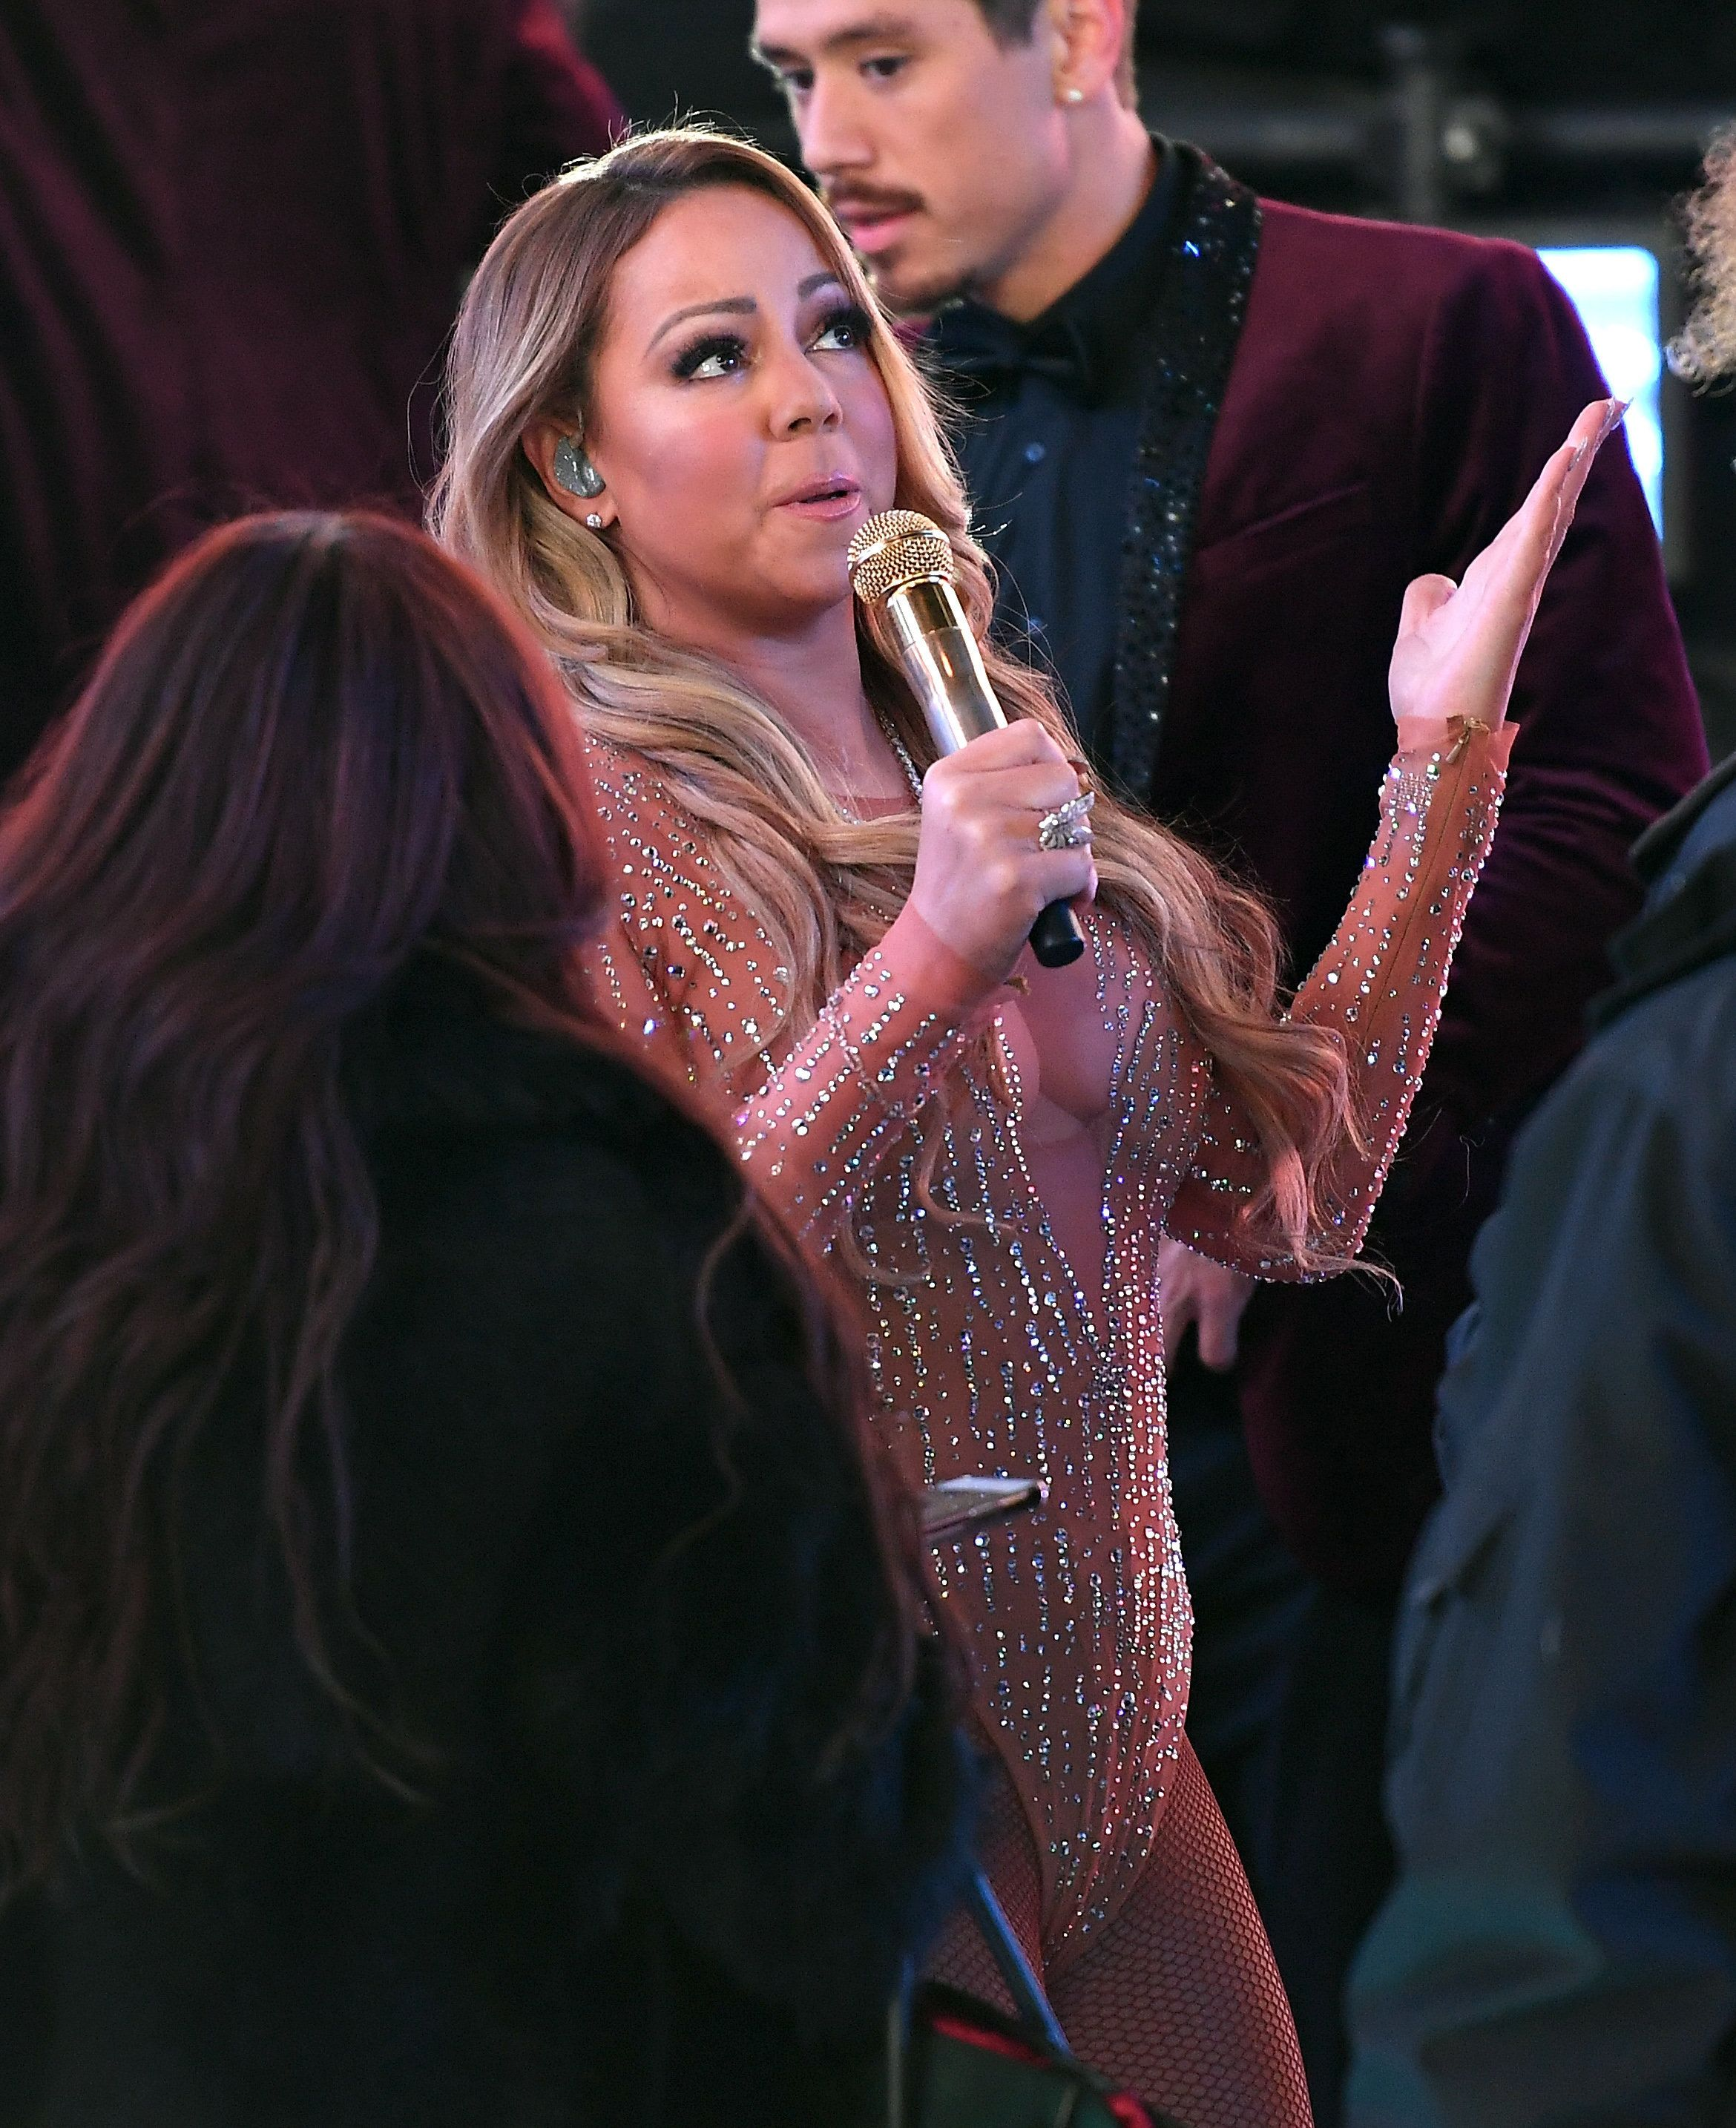 Mariah Carey performs during New Year's Eve celebrations in Times Square on December 31, 2016 in New York.  / AFP / ANGELA WEISS        (Photo credit should read ANGELA WEISS/AFP/Getty Images)